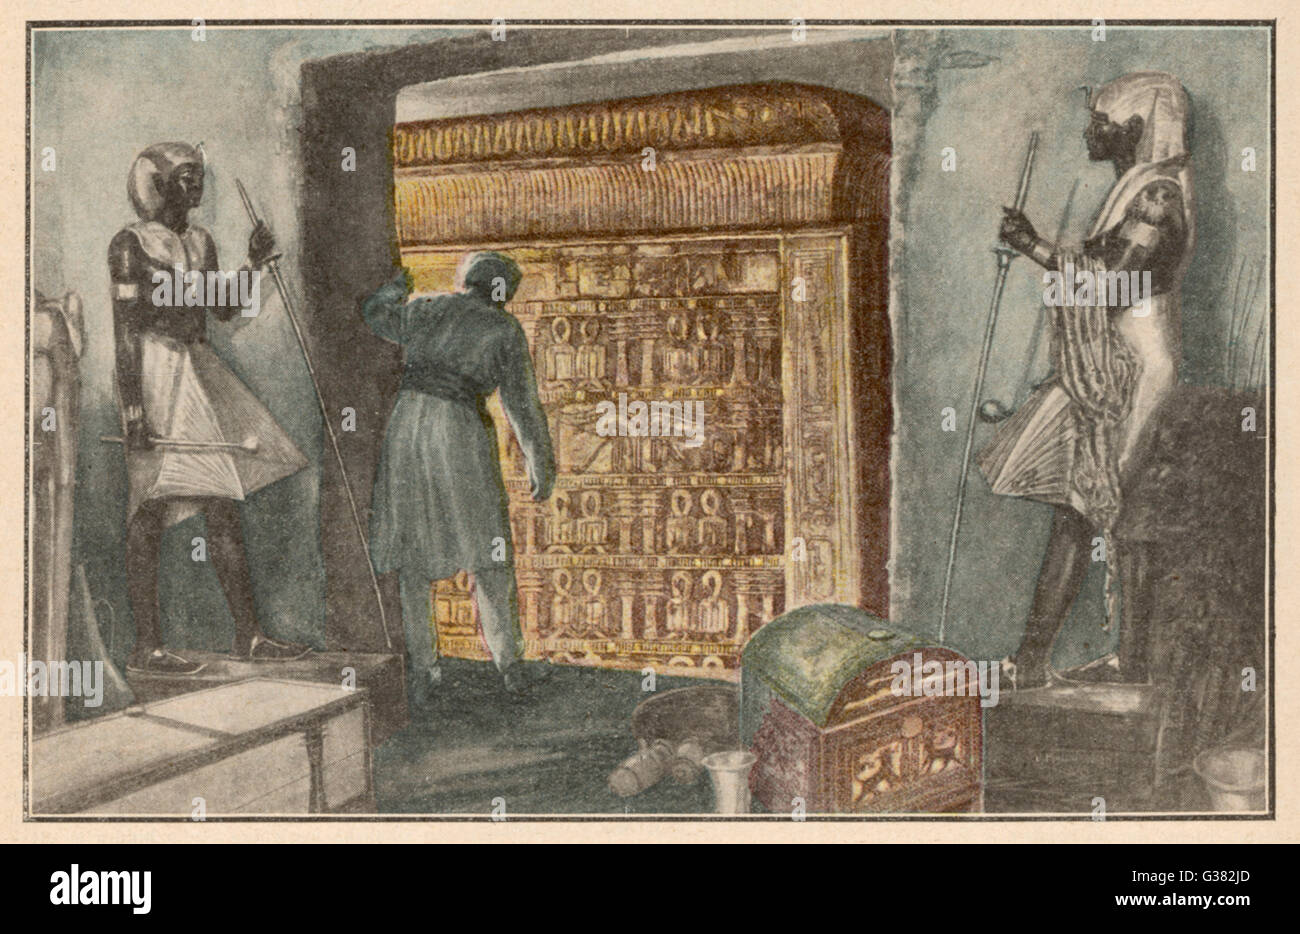 Discovering the sarcophagus  in the burial chamber         Date: 1924 - Stock Image